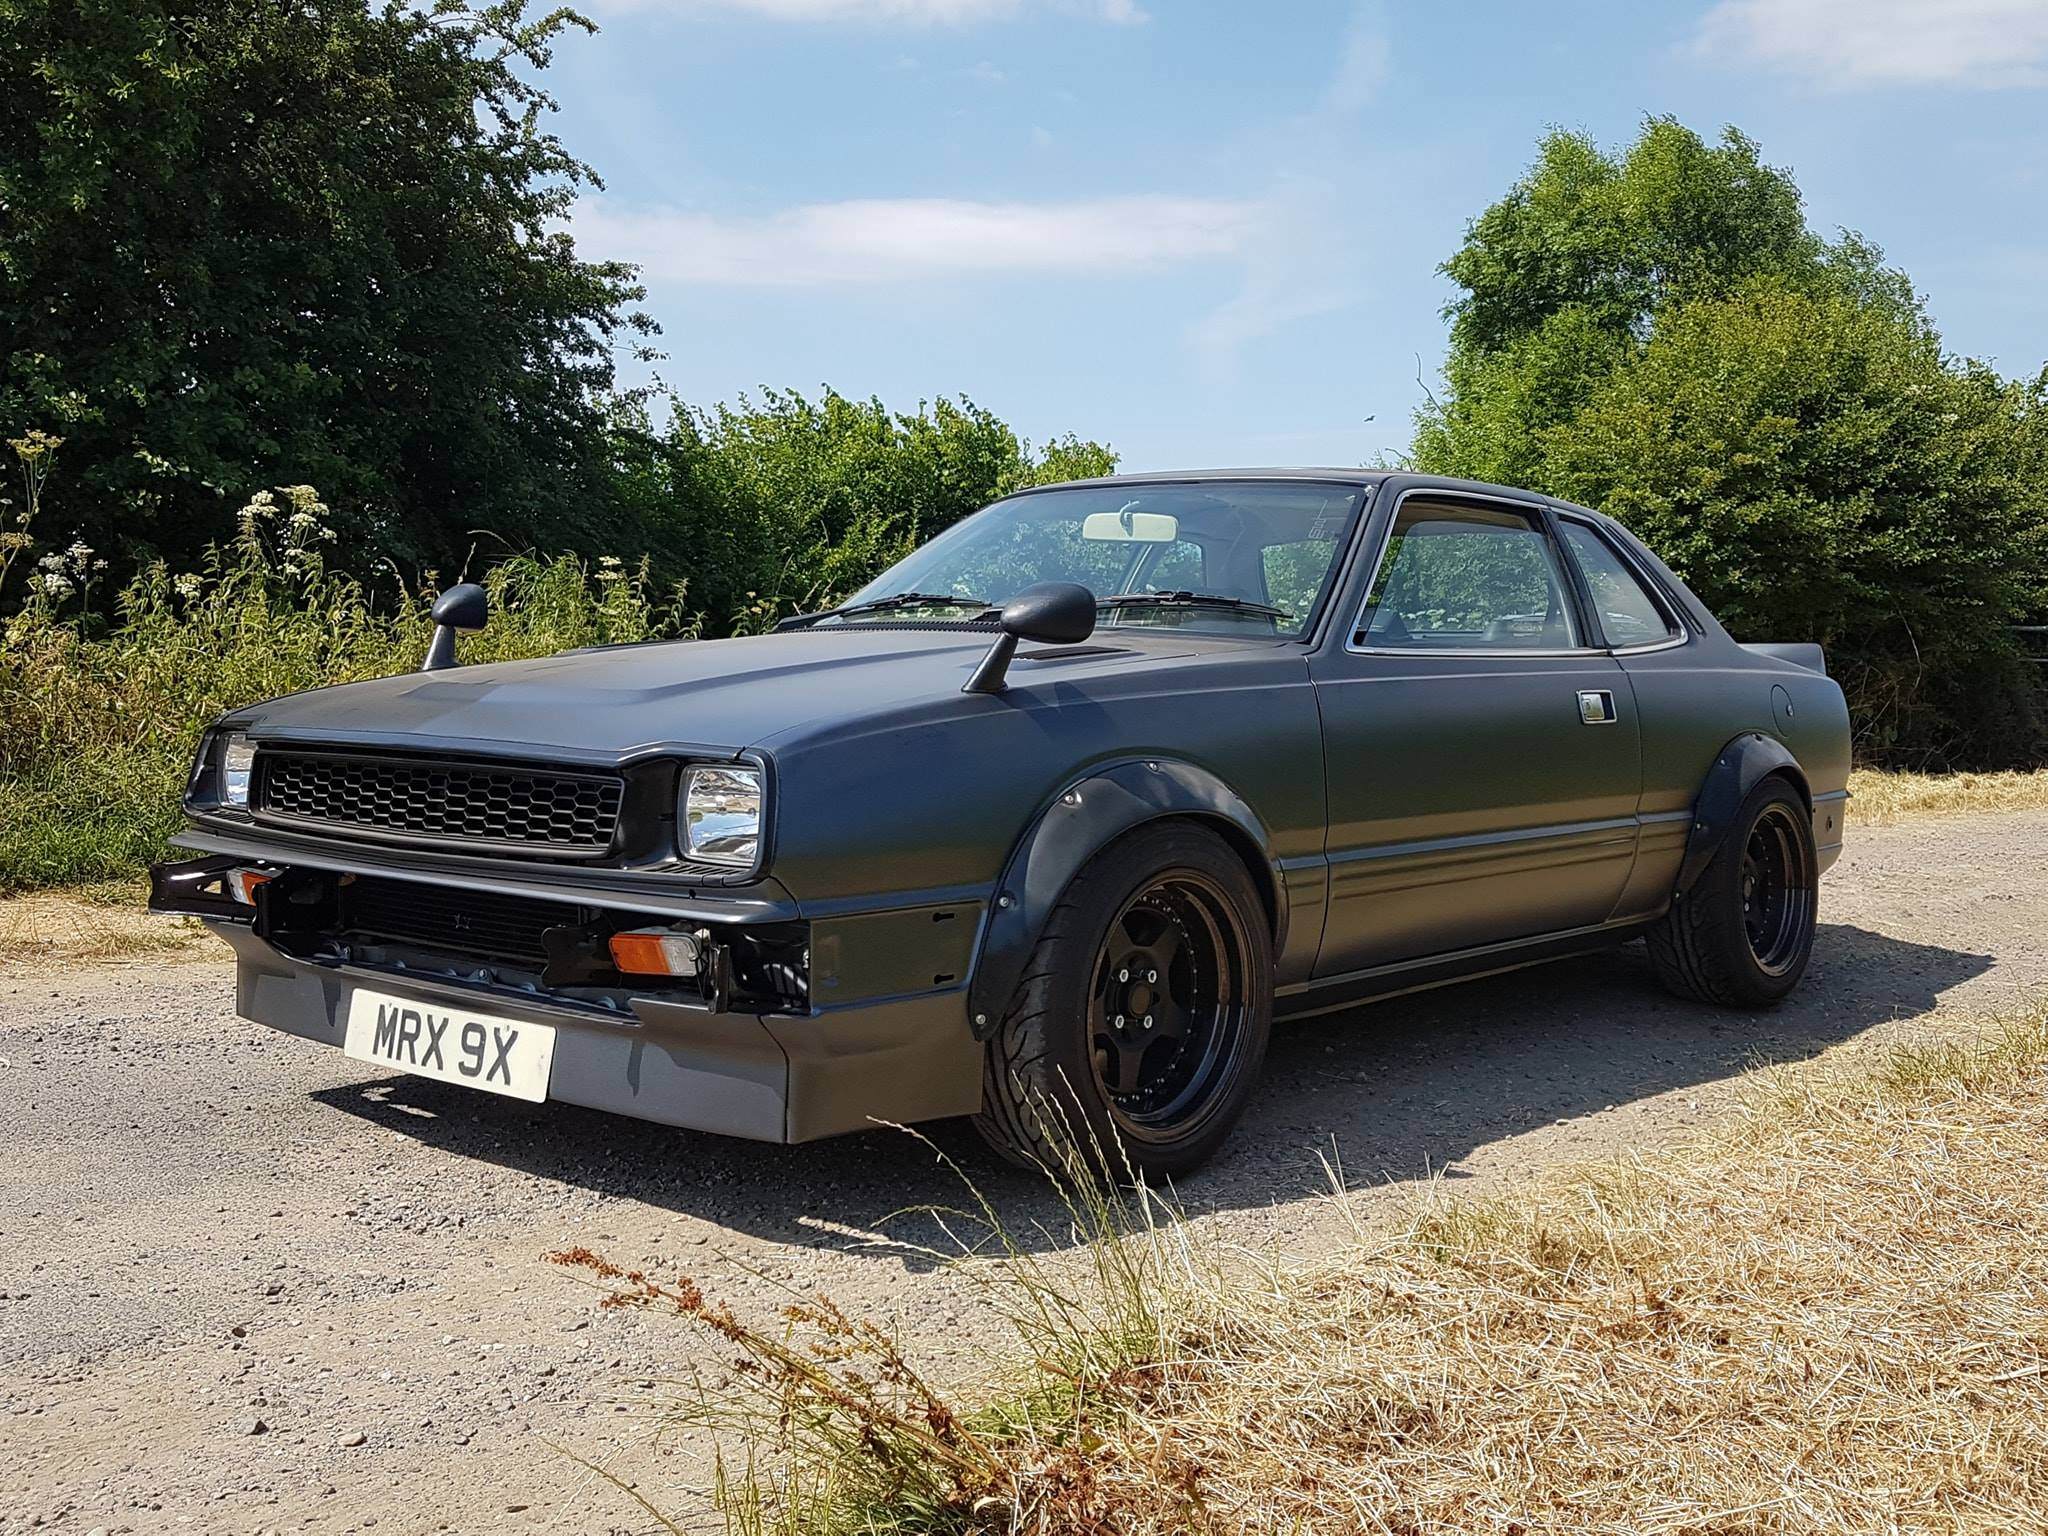 Honda Prelude With A 2.2 L H22A Inline-Four